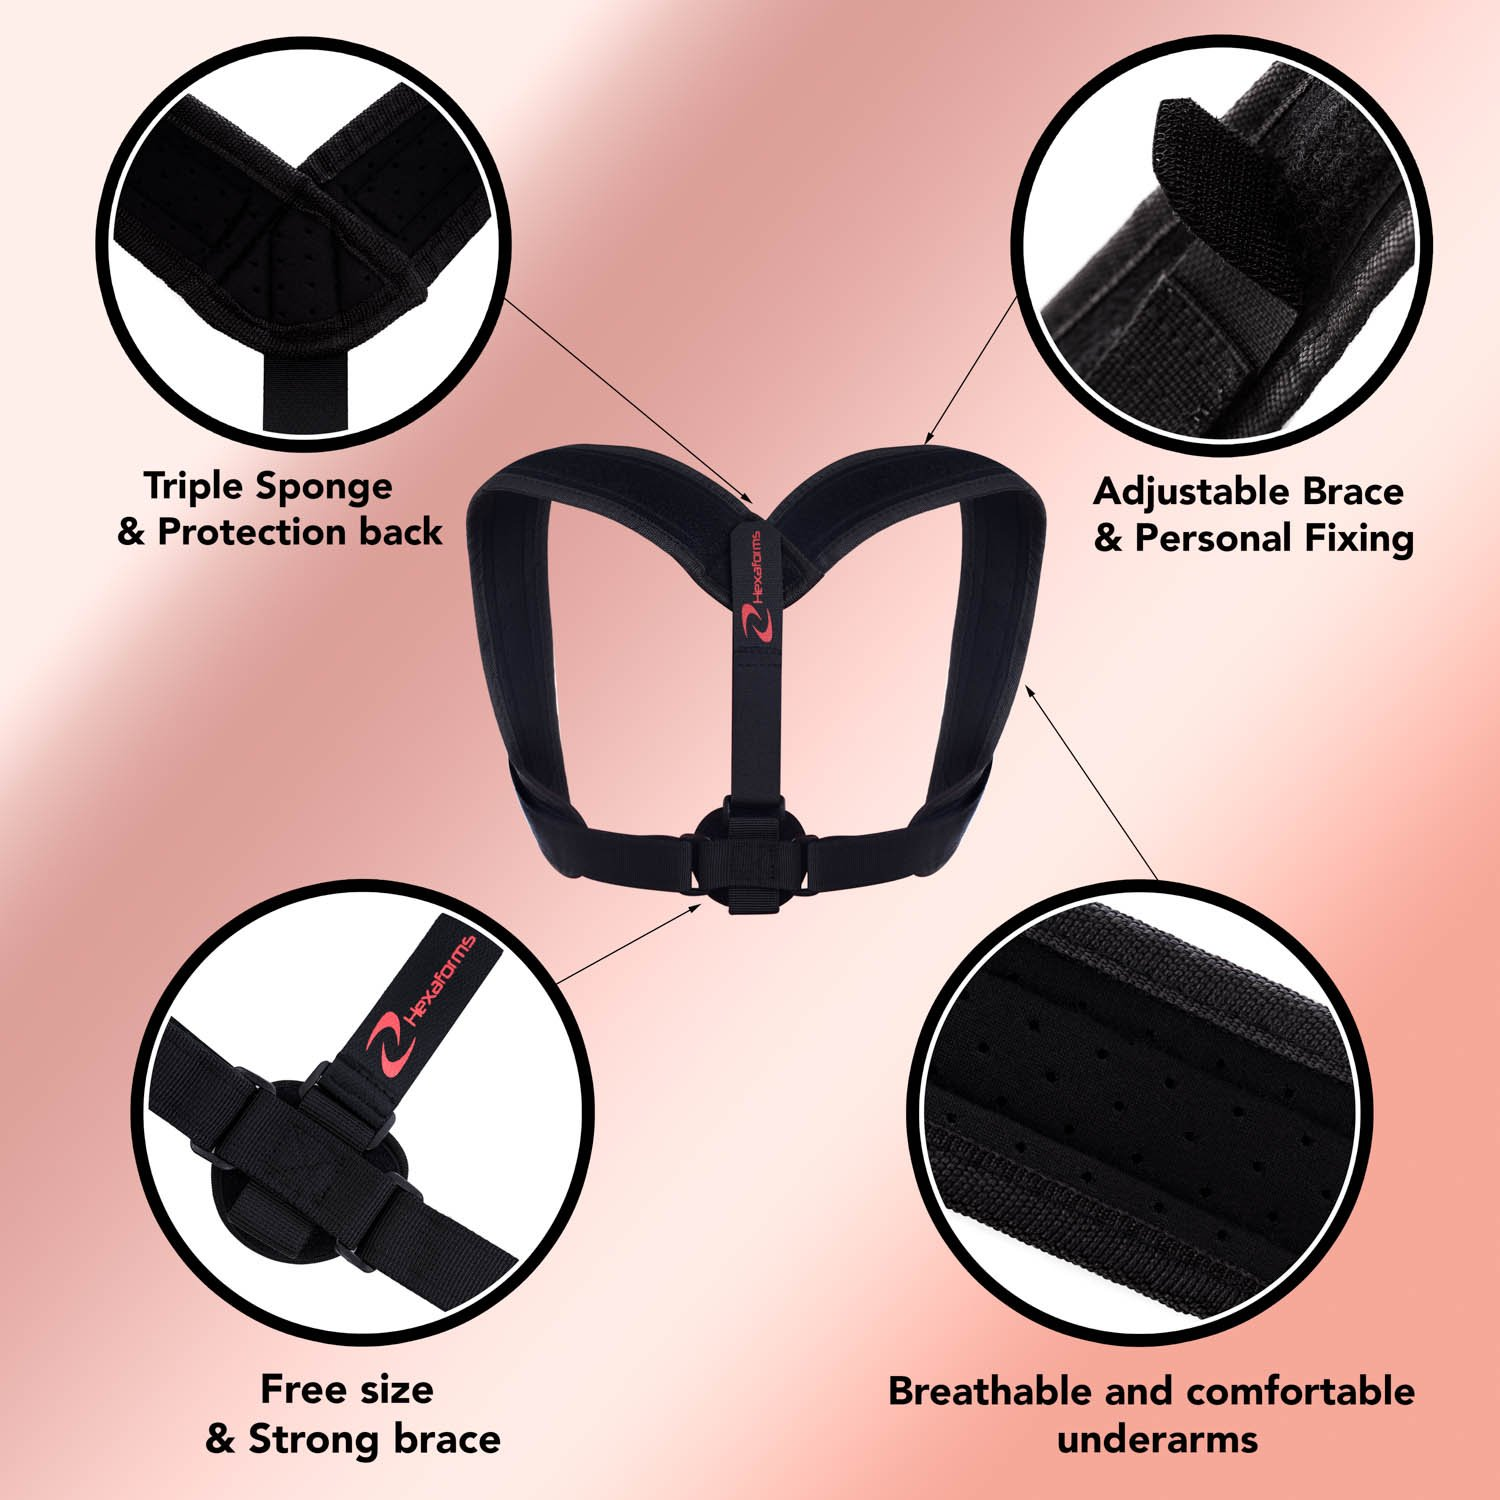 Hexaforms Back Posture Corrector for Women & Men - Effective and Comfortable Posture Brace for Slouching and Hunching - Clavicle Support for Upper Back & Shoulder Pain Relief - Medical Problems by Hexaforms (Image #8)